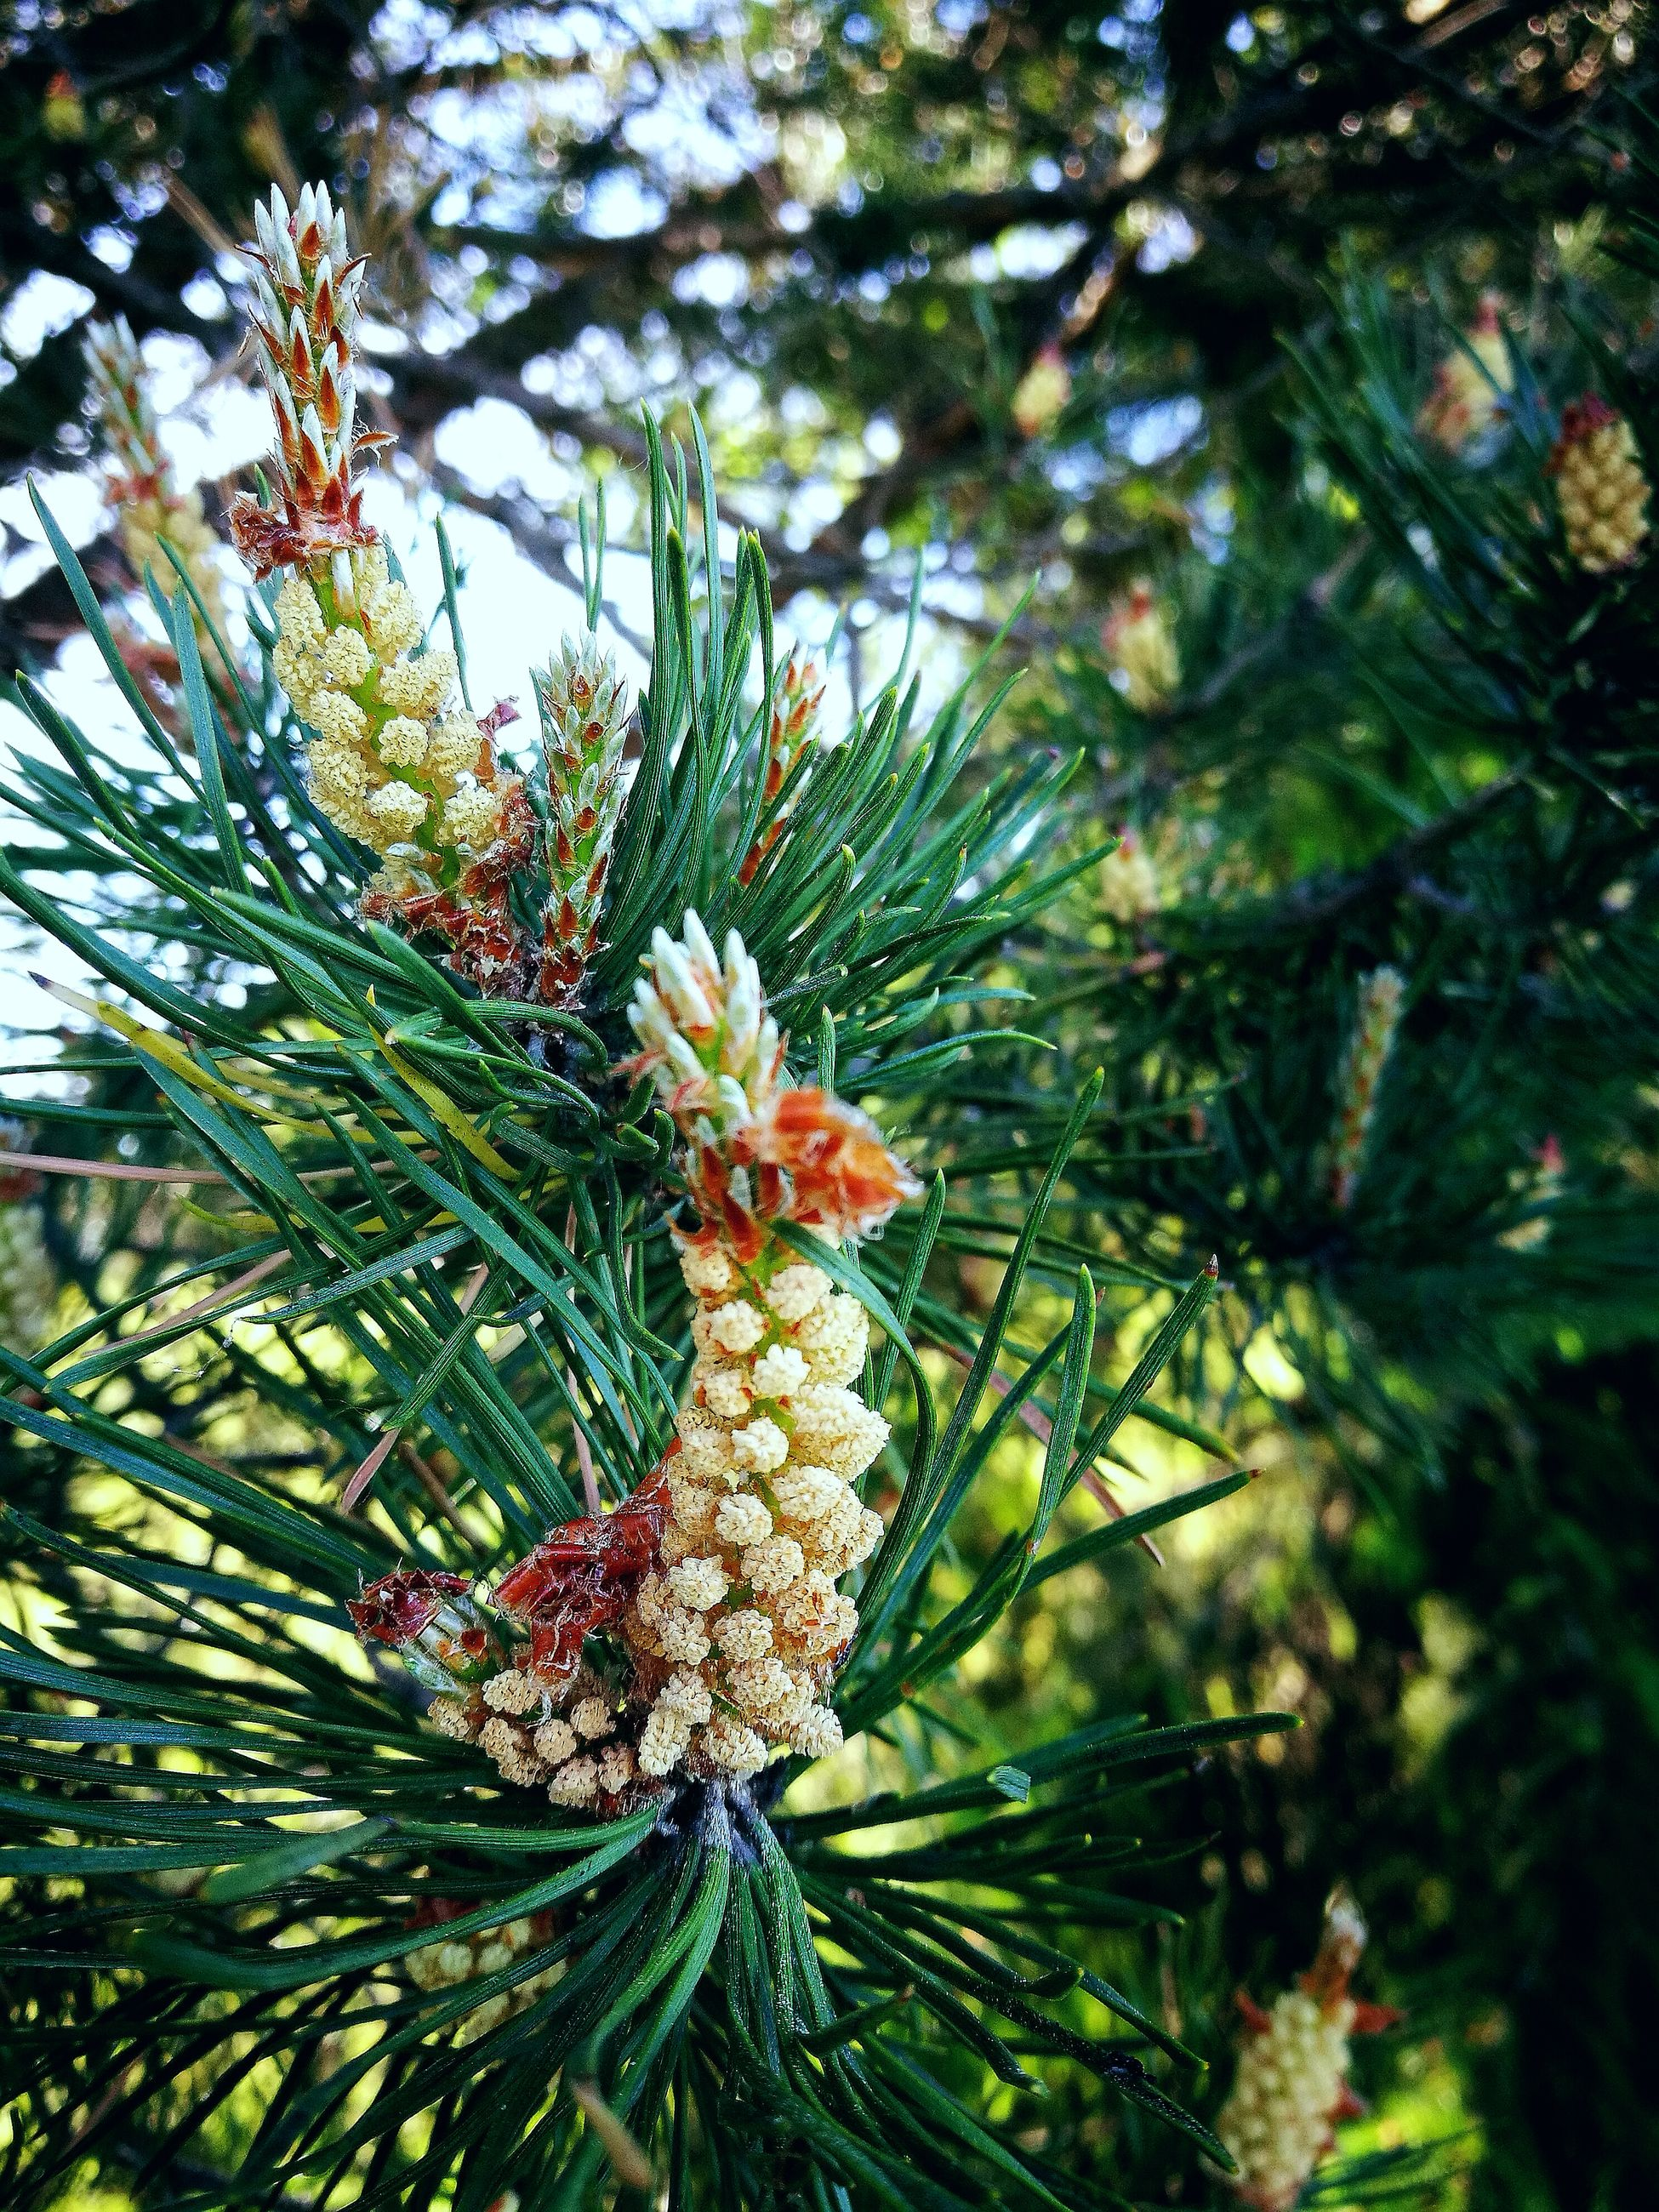 tree, growth, green color, nature, fruit, beauty in nature, no people, branch, freshness, pine tree, day, outdoors, flower, close-up, needle, food